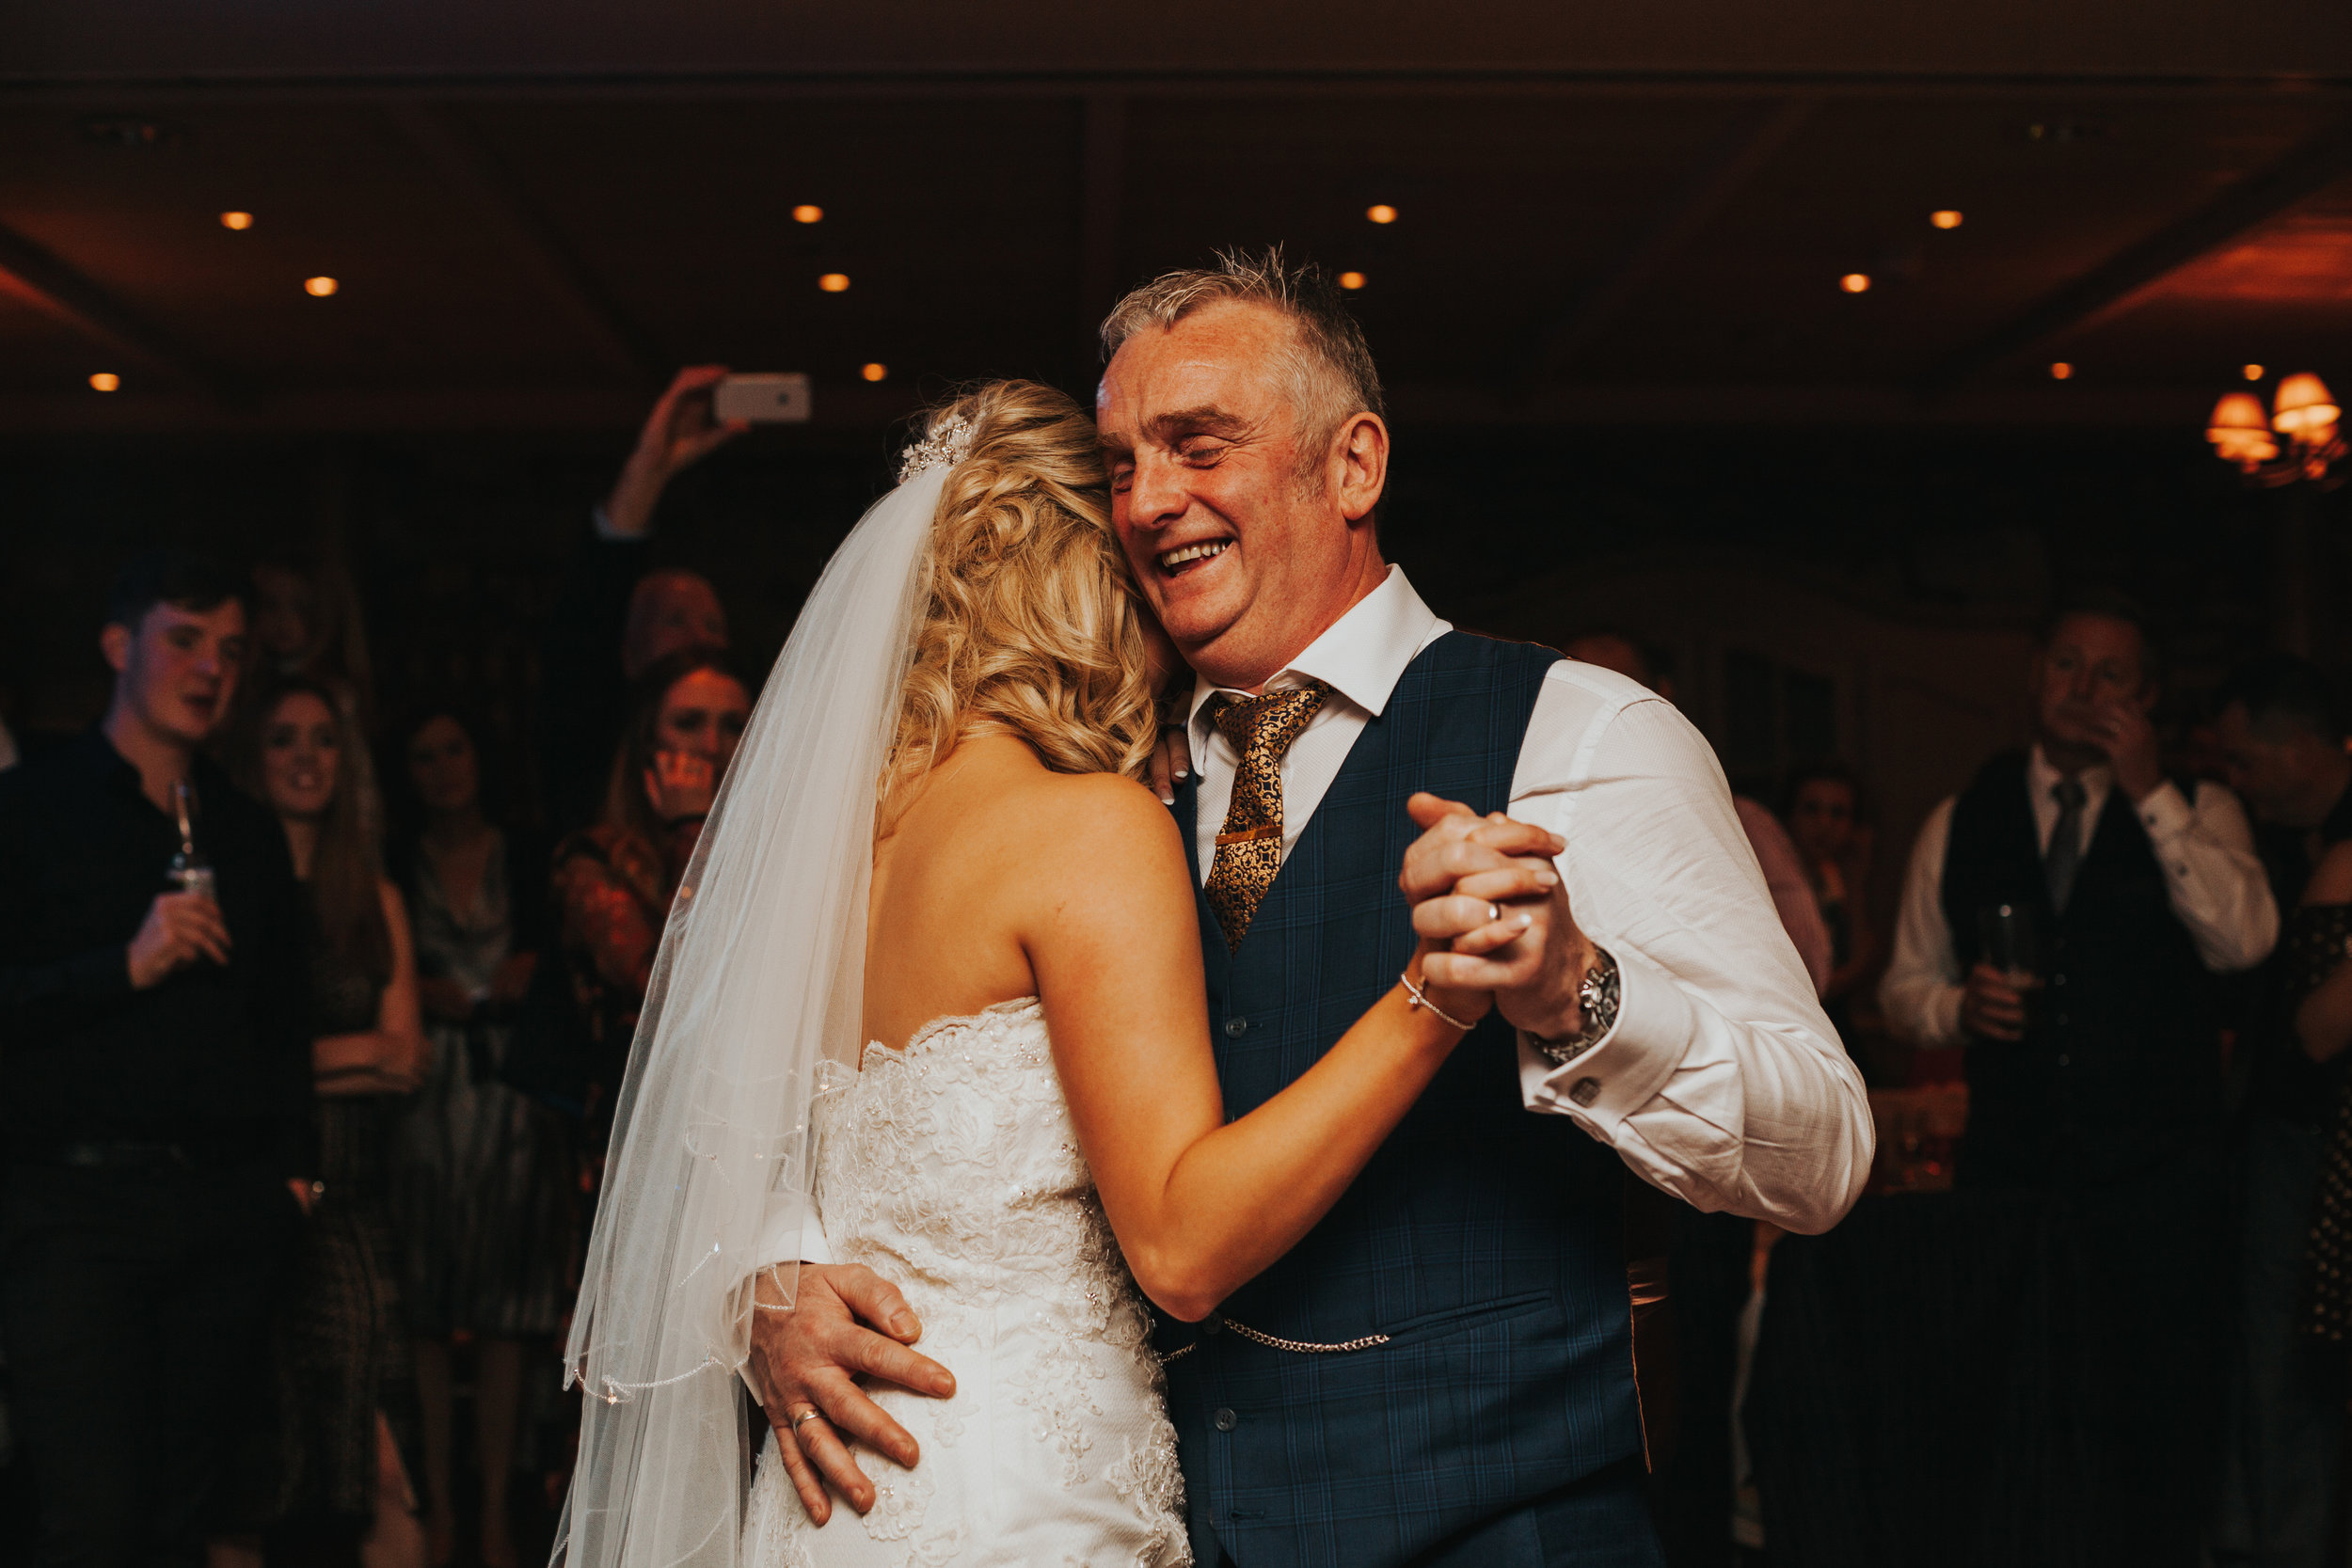 Dad laughing as he dances with his daughter.